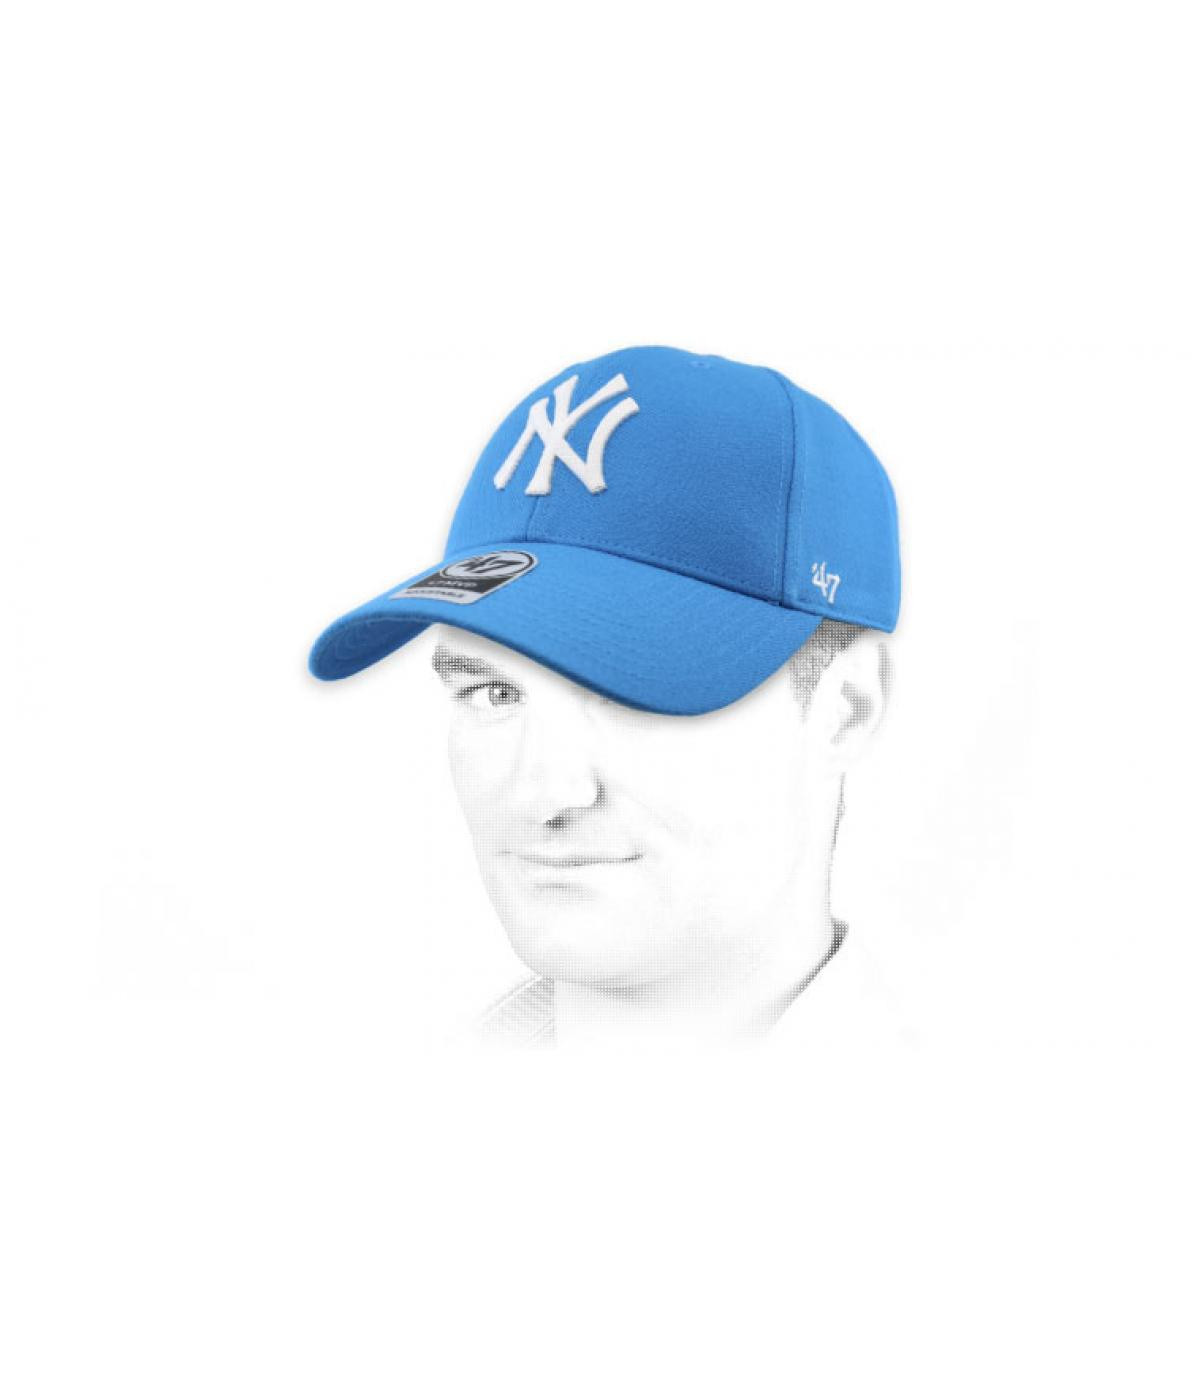 casquette NY turquoise47